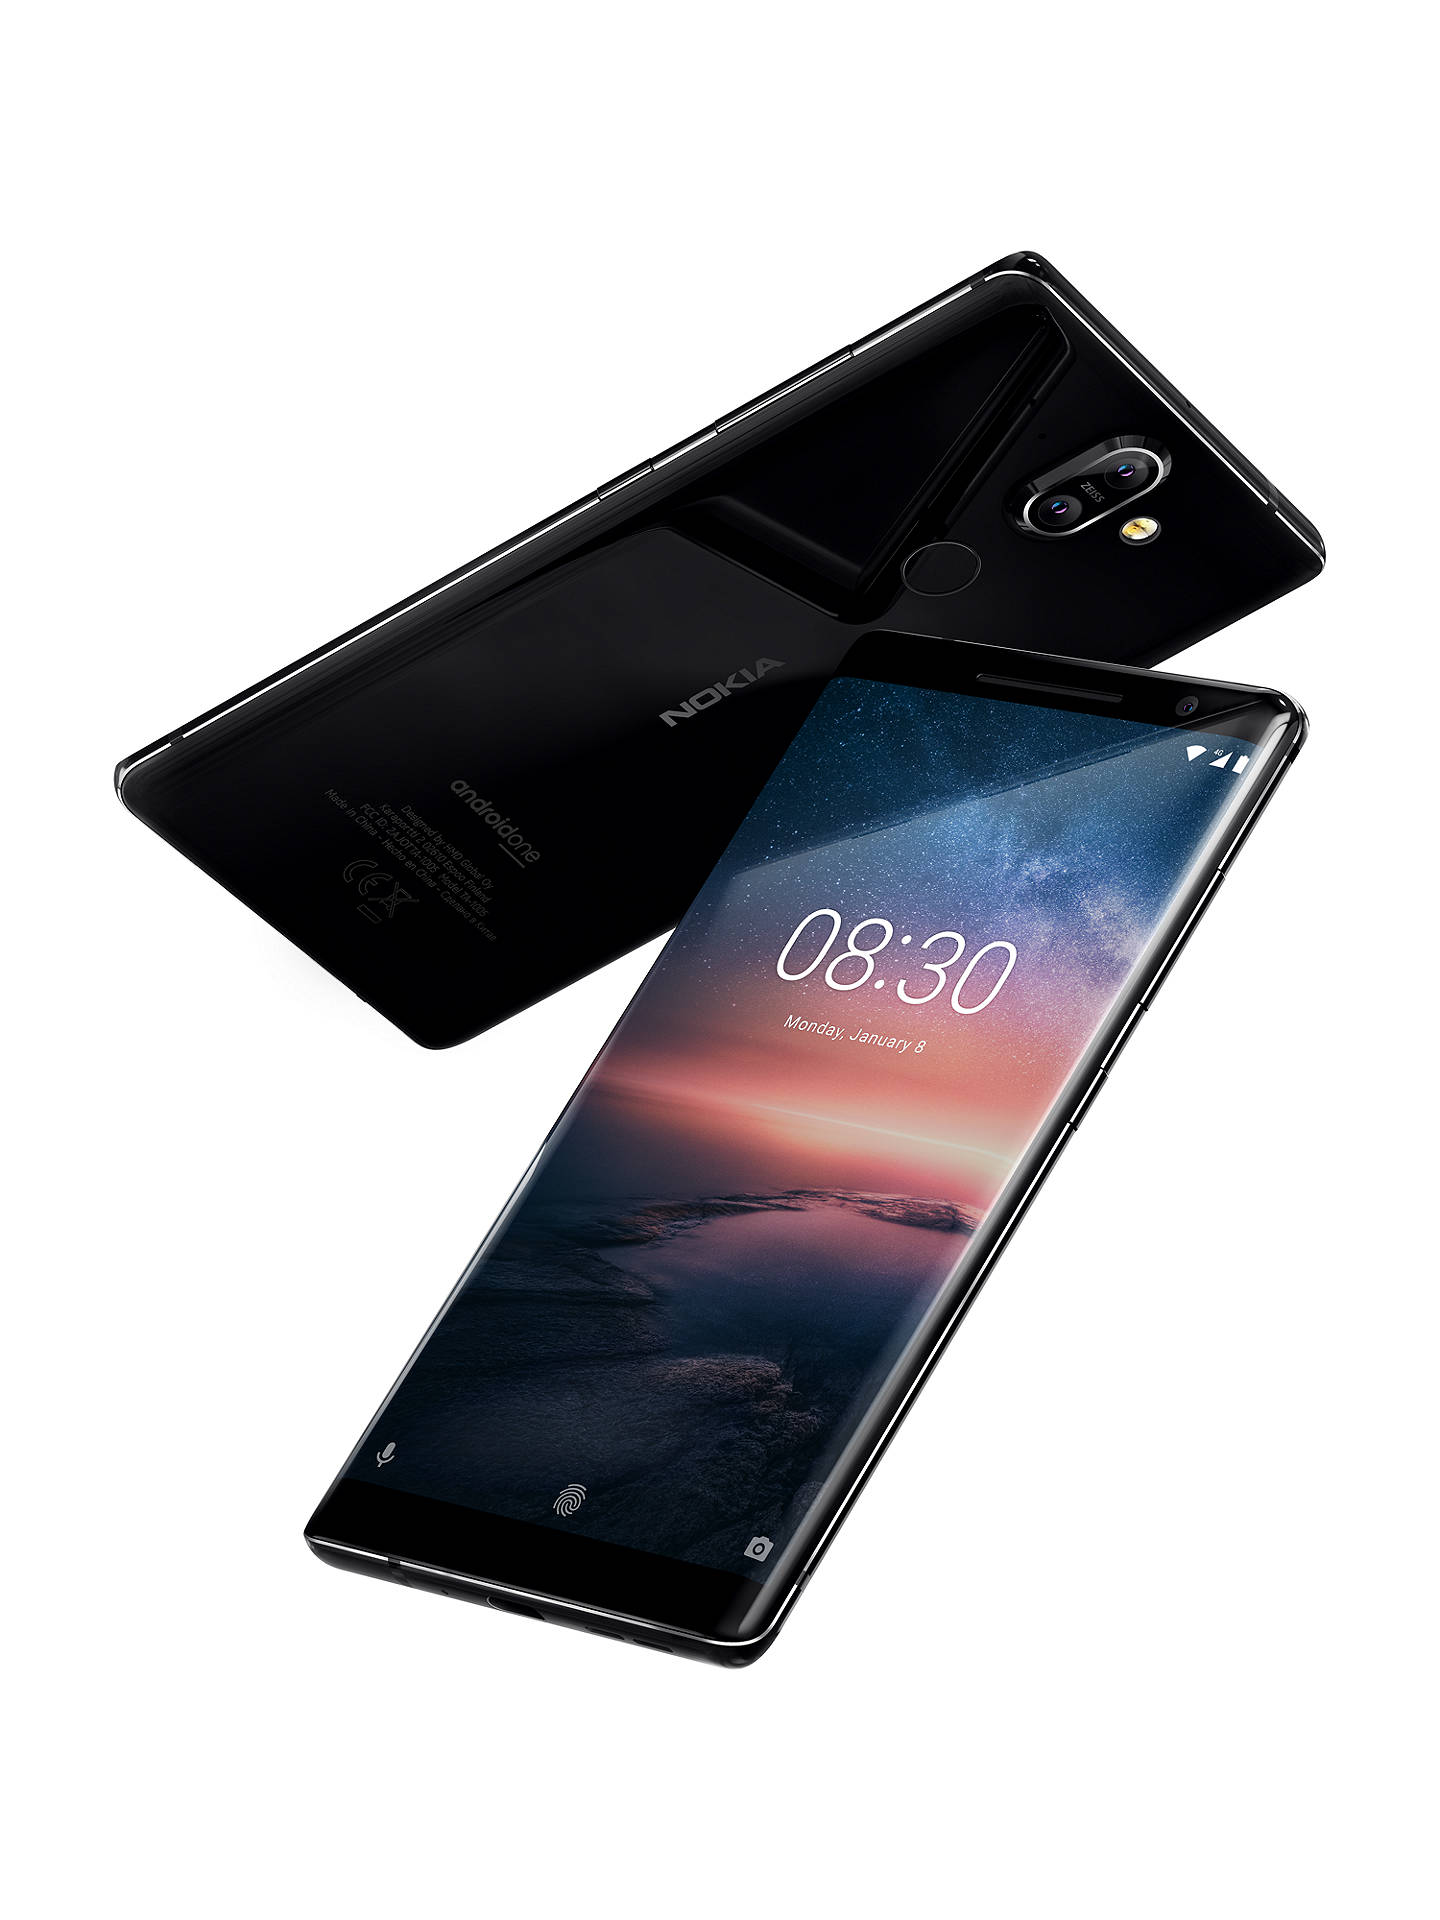 Nokia 8 Sirocco Smartphone Android 55 4g Lte Sim Free 128gb